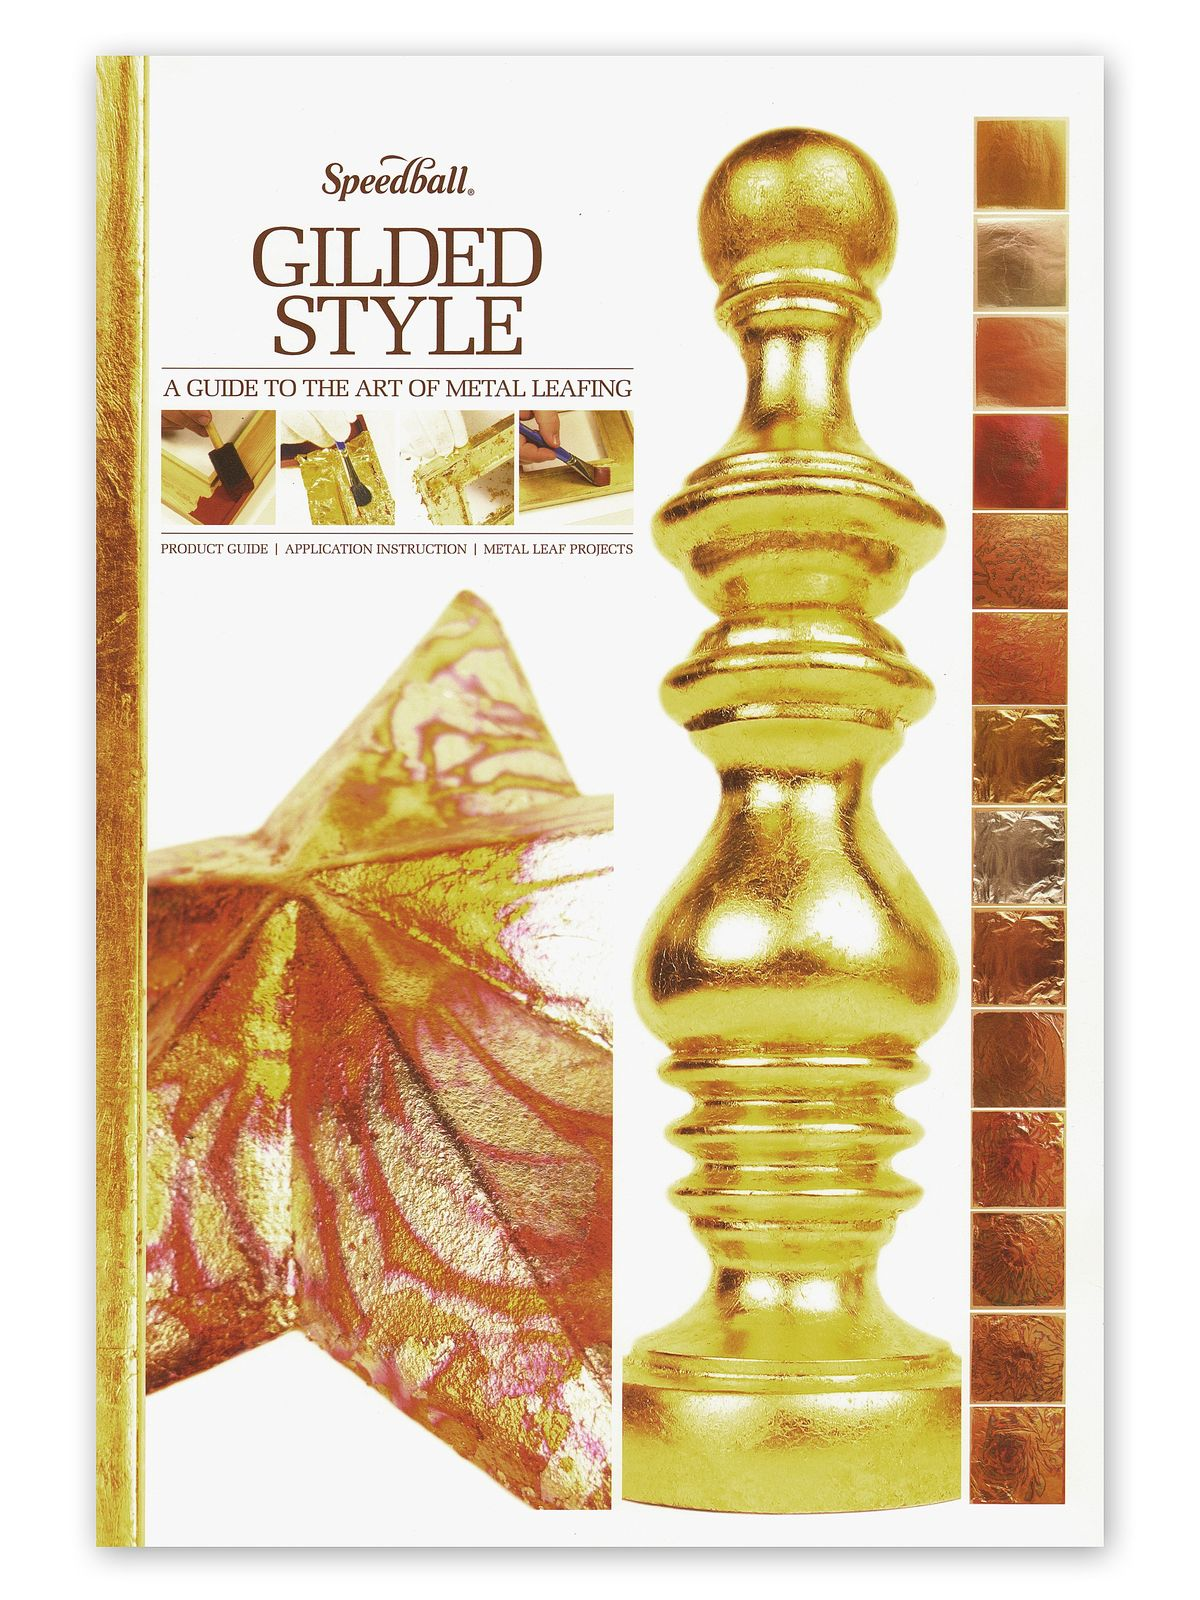 Gilded Style: A Guide to the Art of Metal Leafing